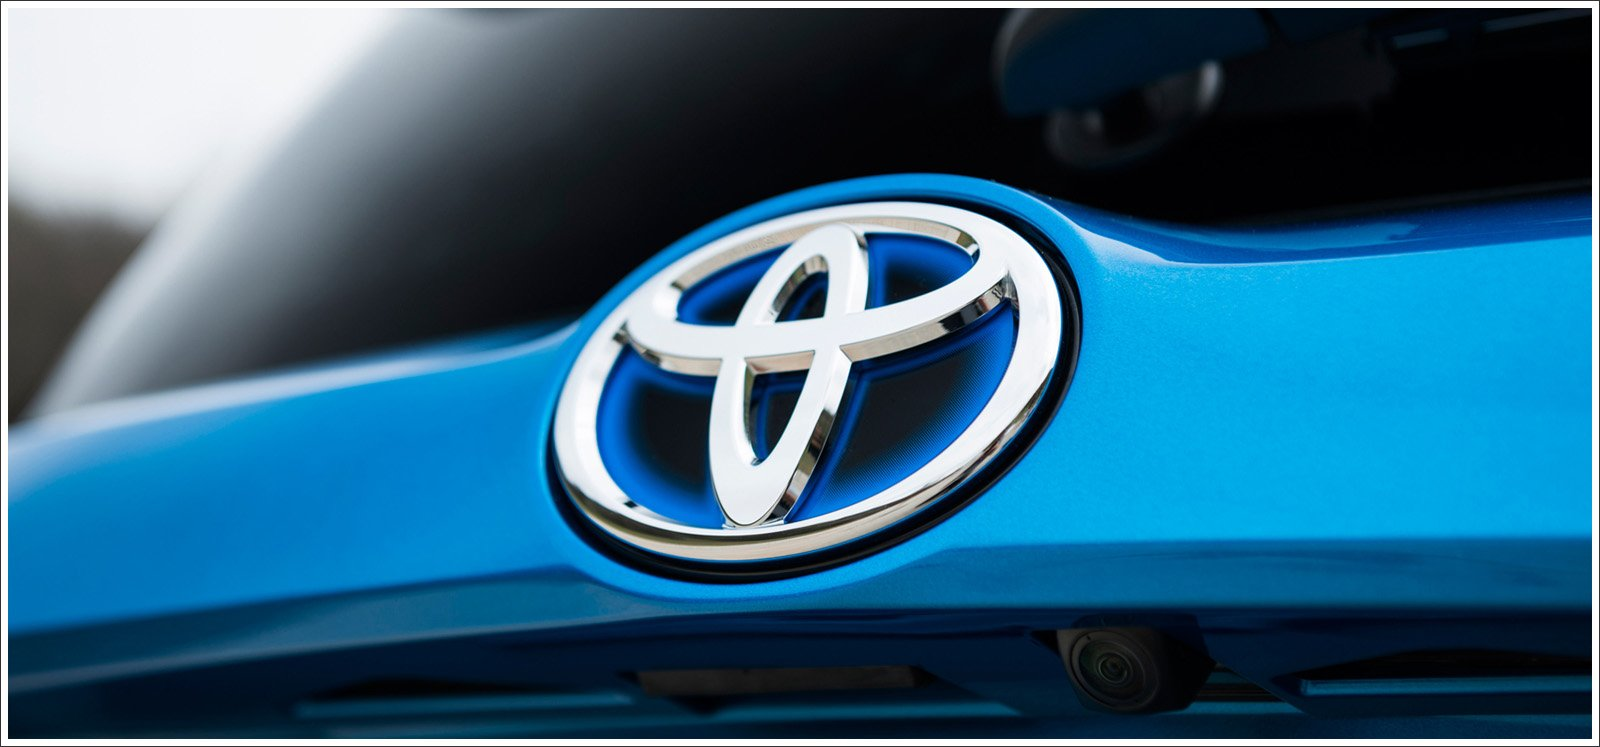 Toyota Logo Meaning And History Latest Models World